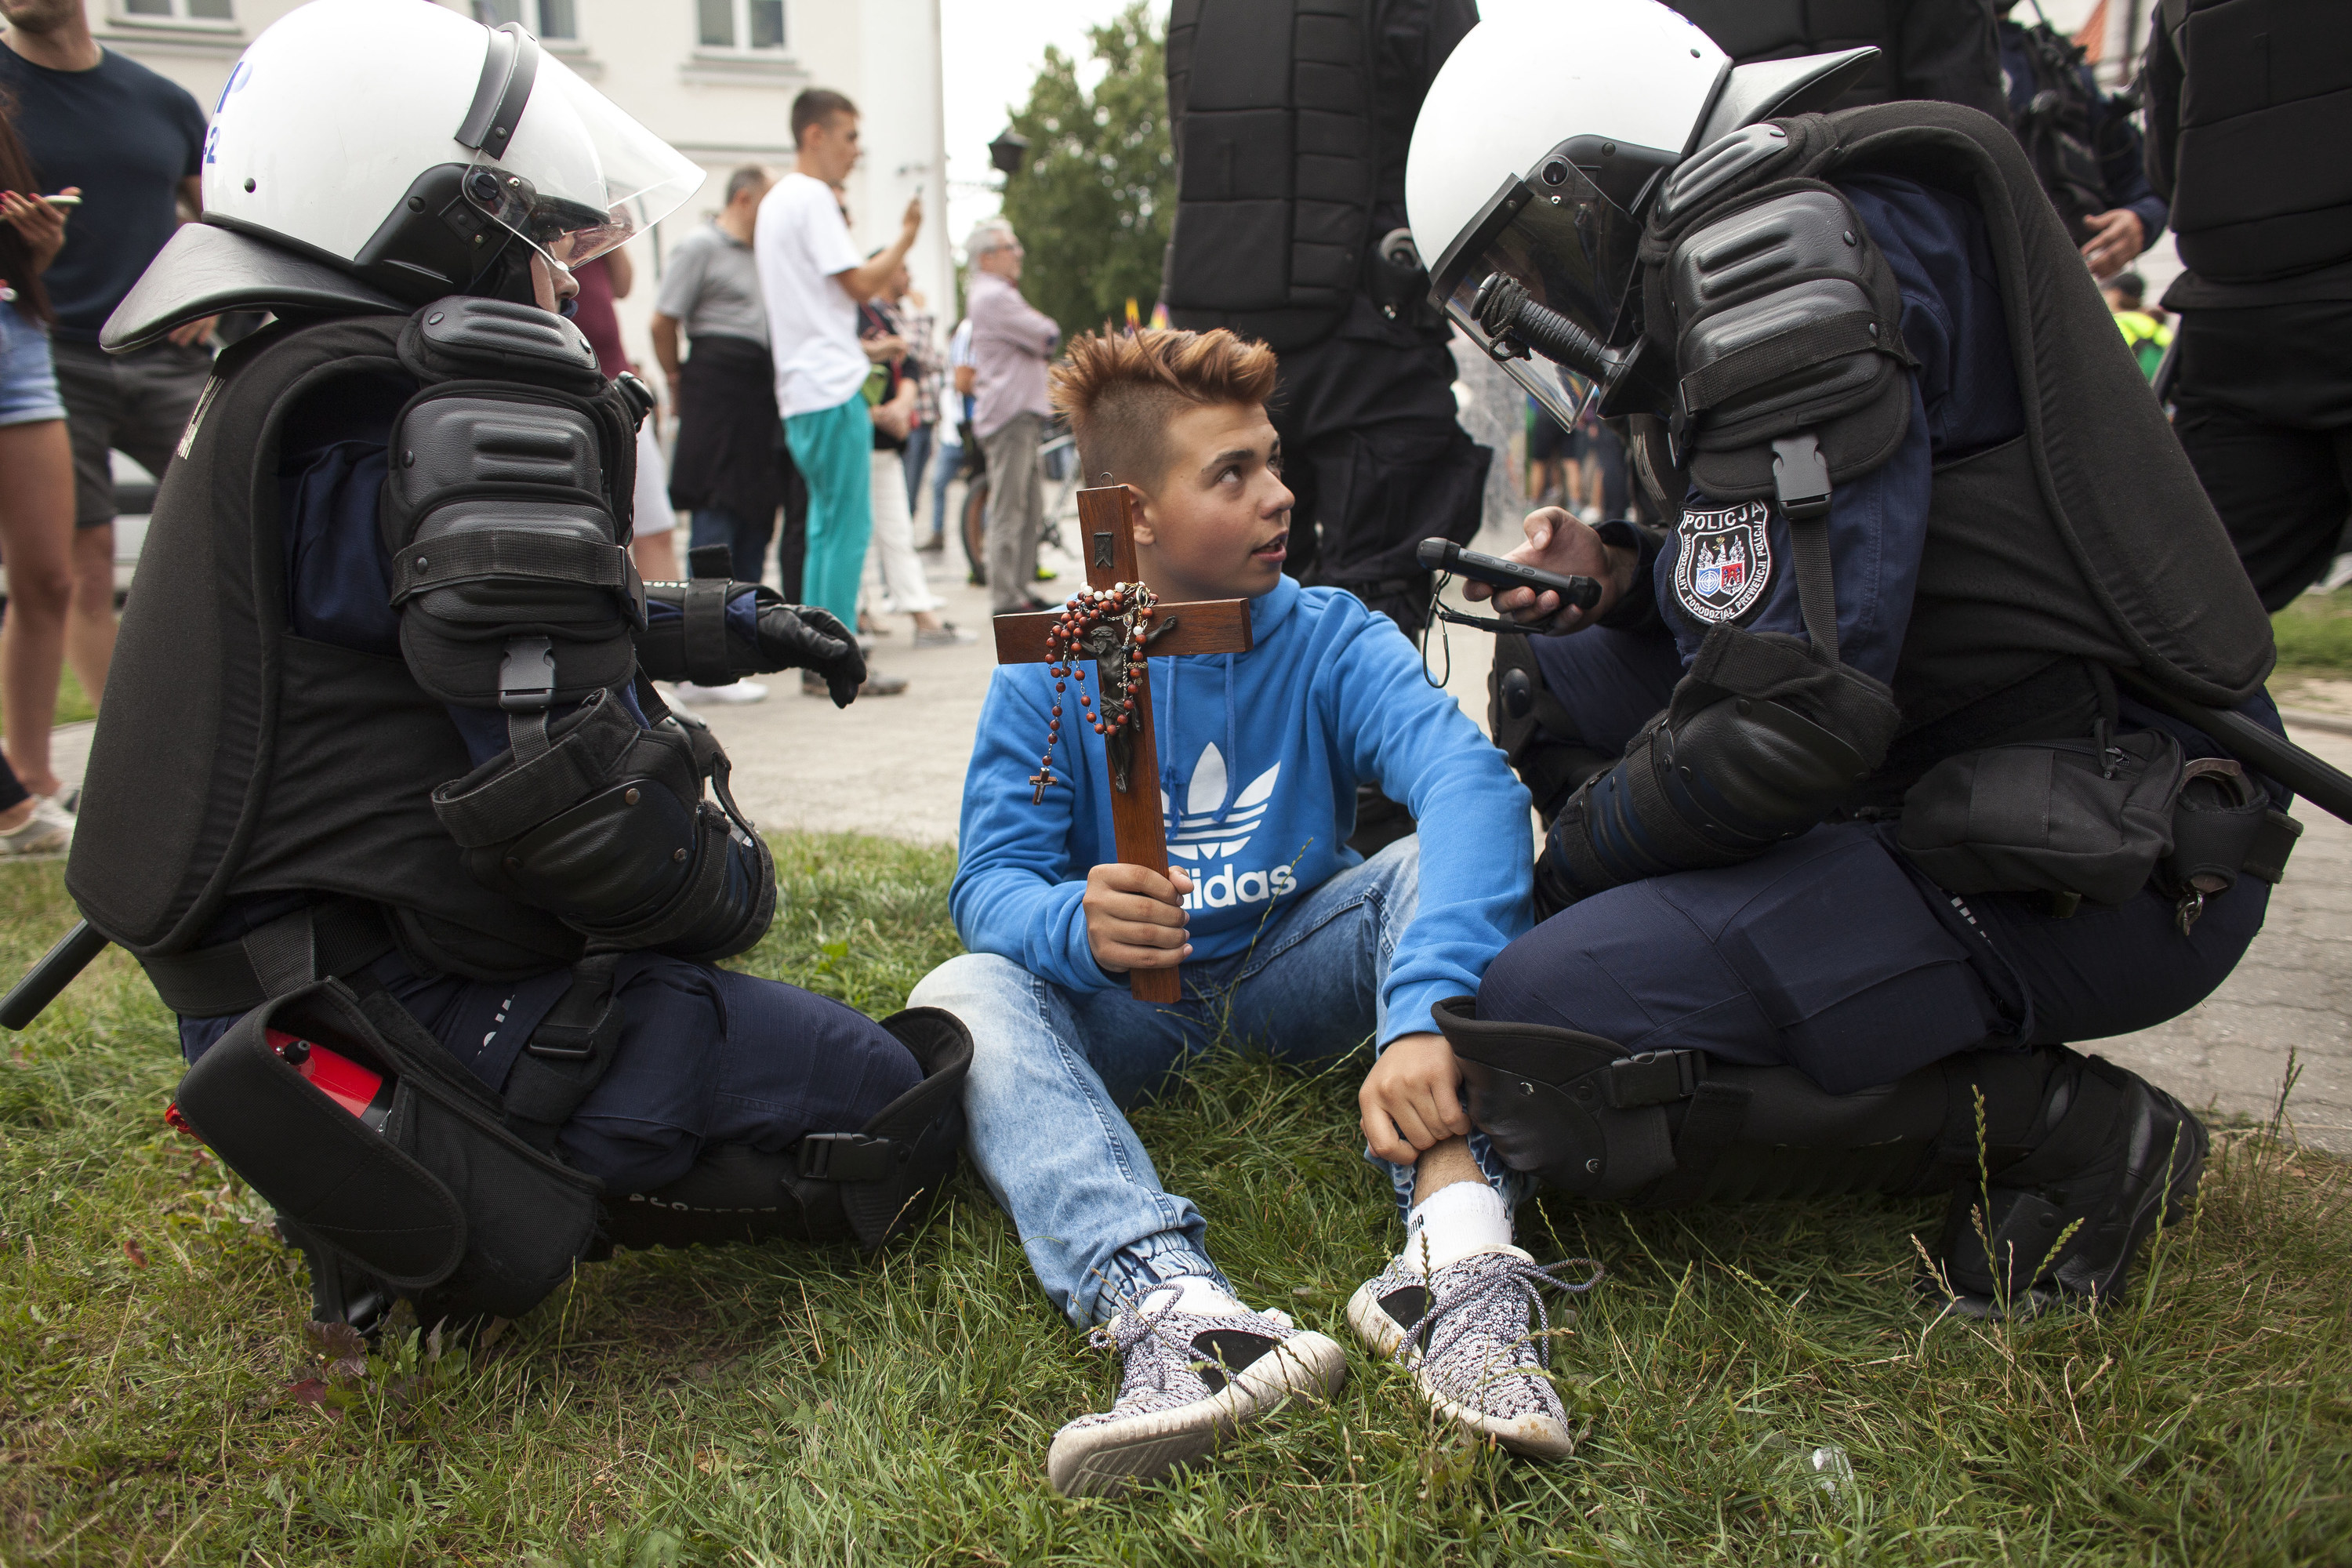 Officers kneel next to a kid holding a crucifix